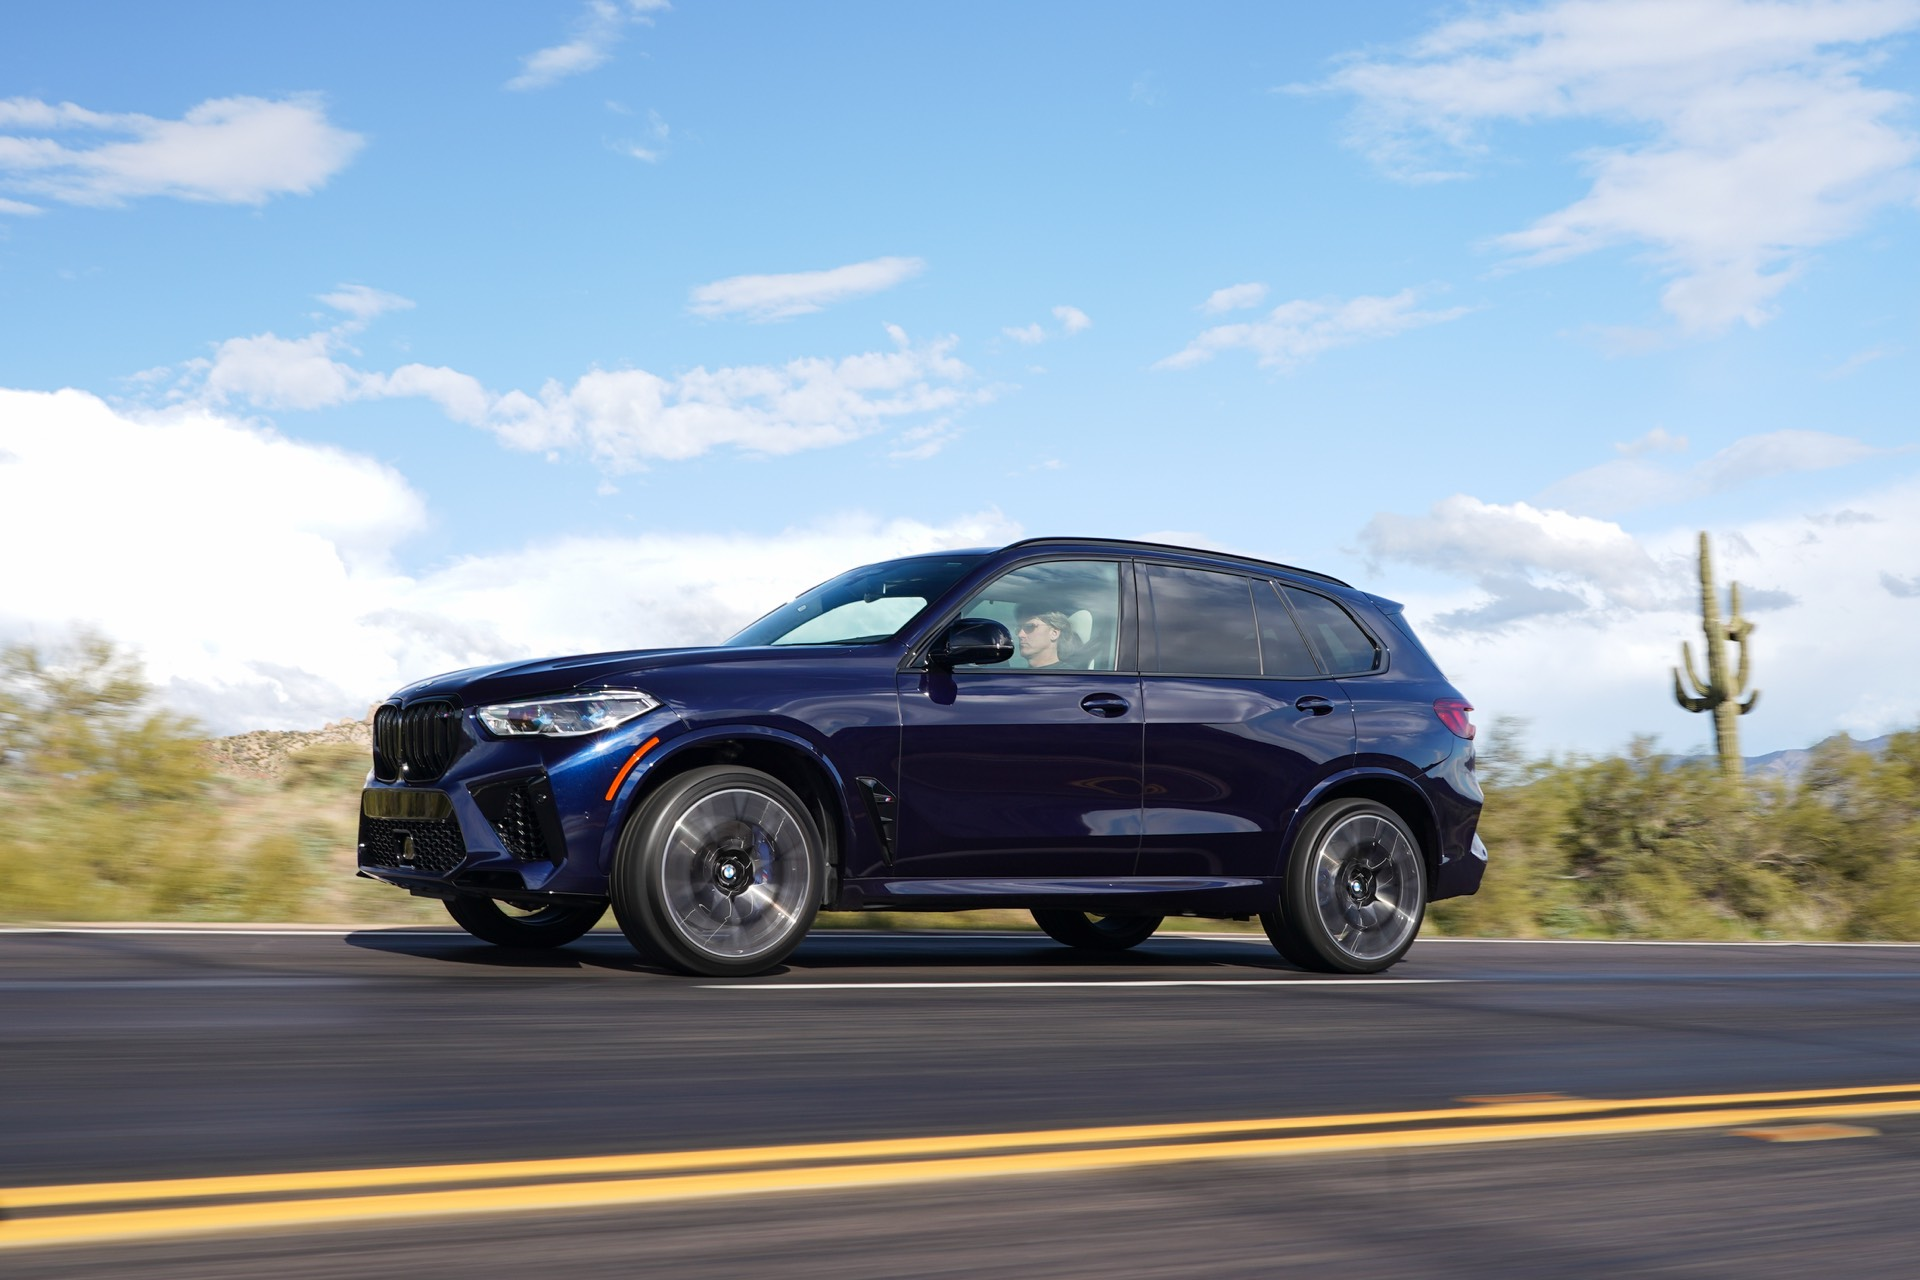 BMW X5 M Review